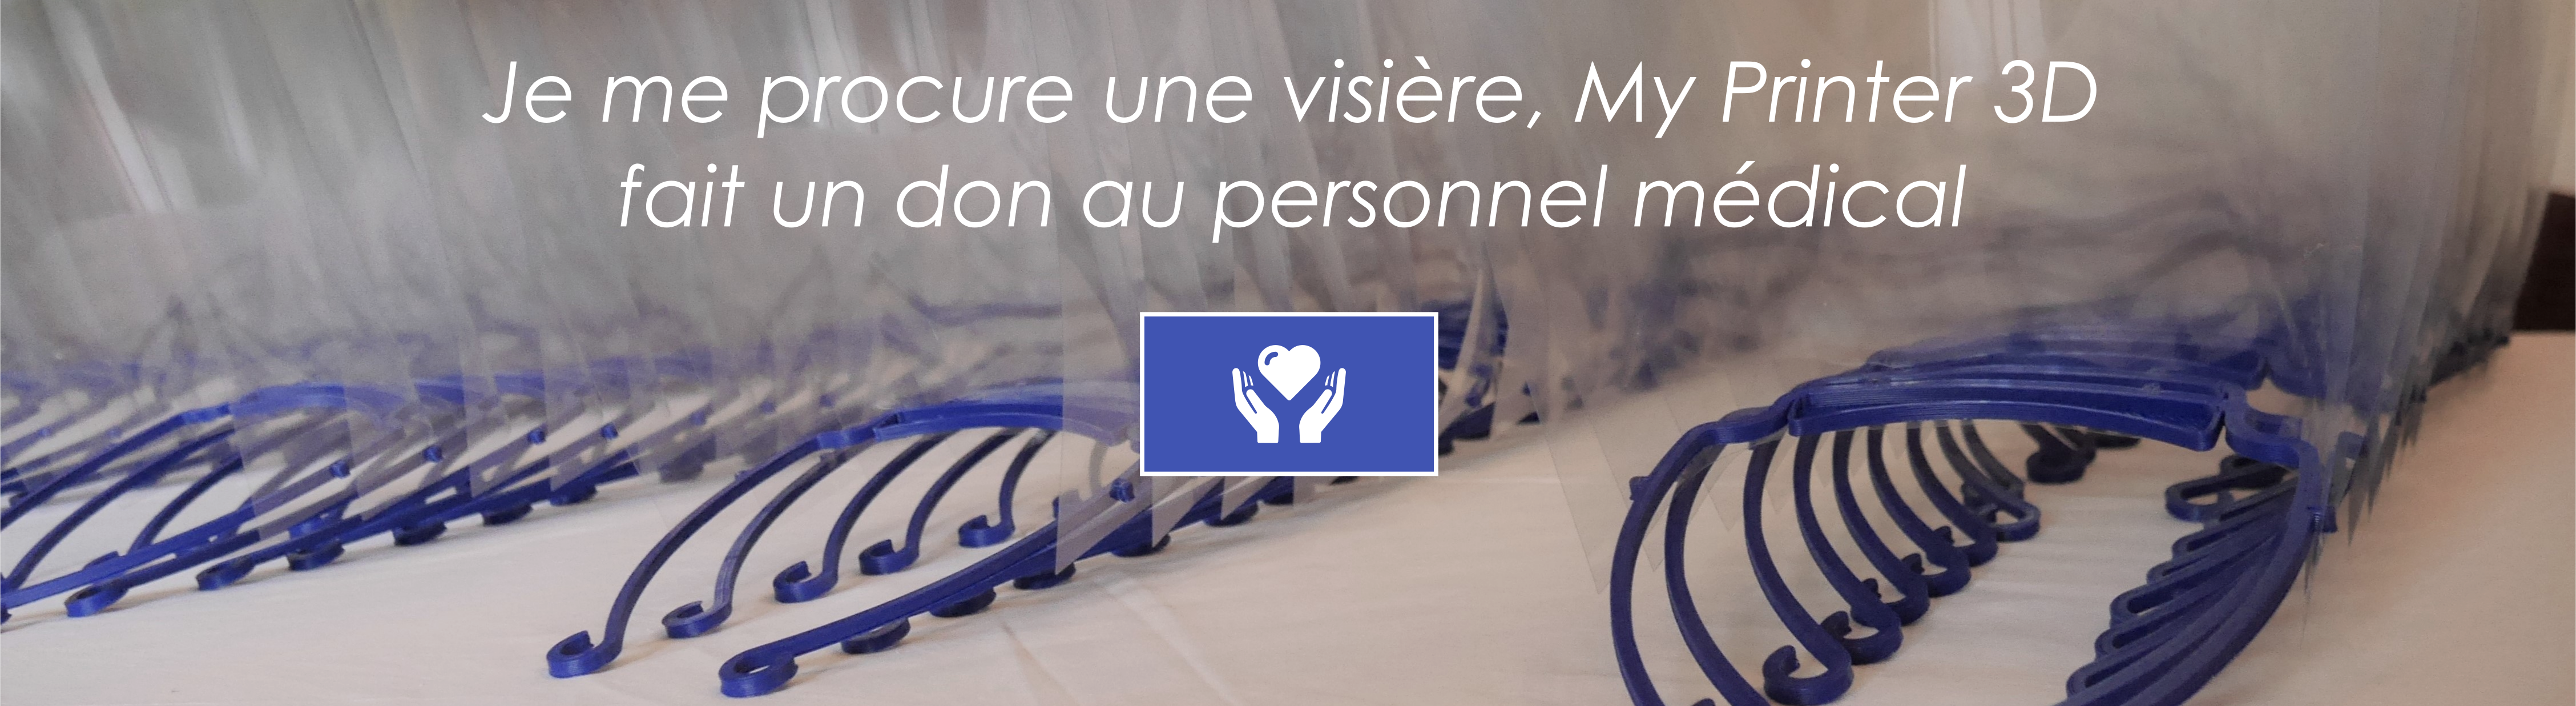 Visière-solidaire-my-printer-3D